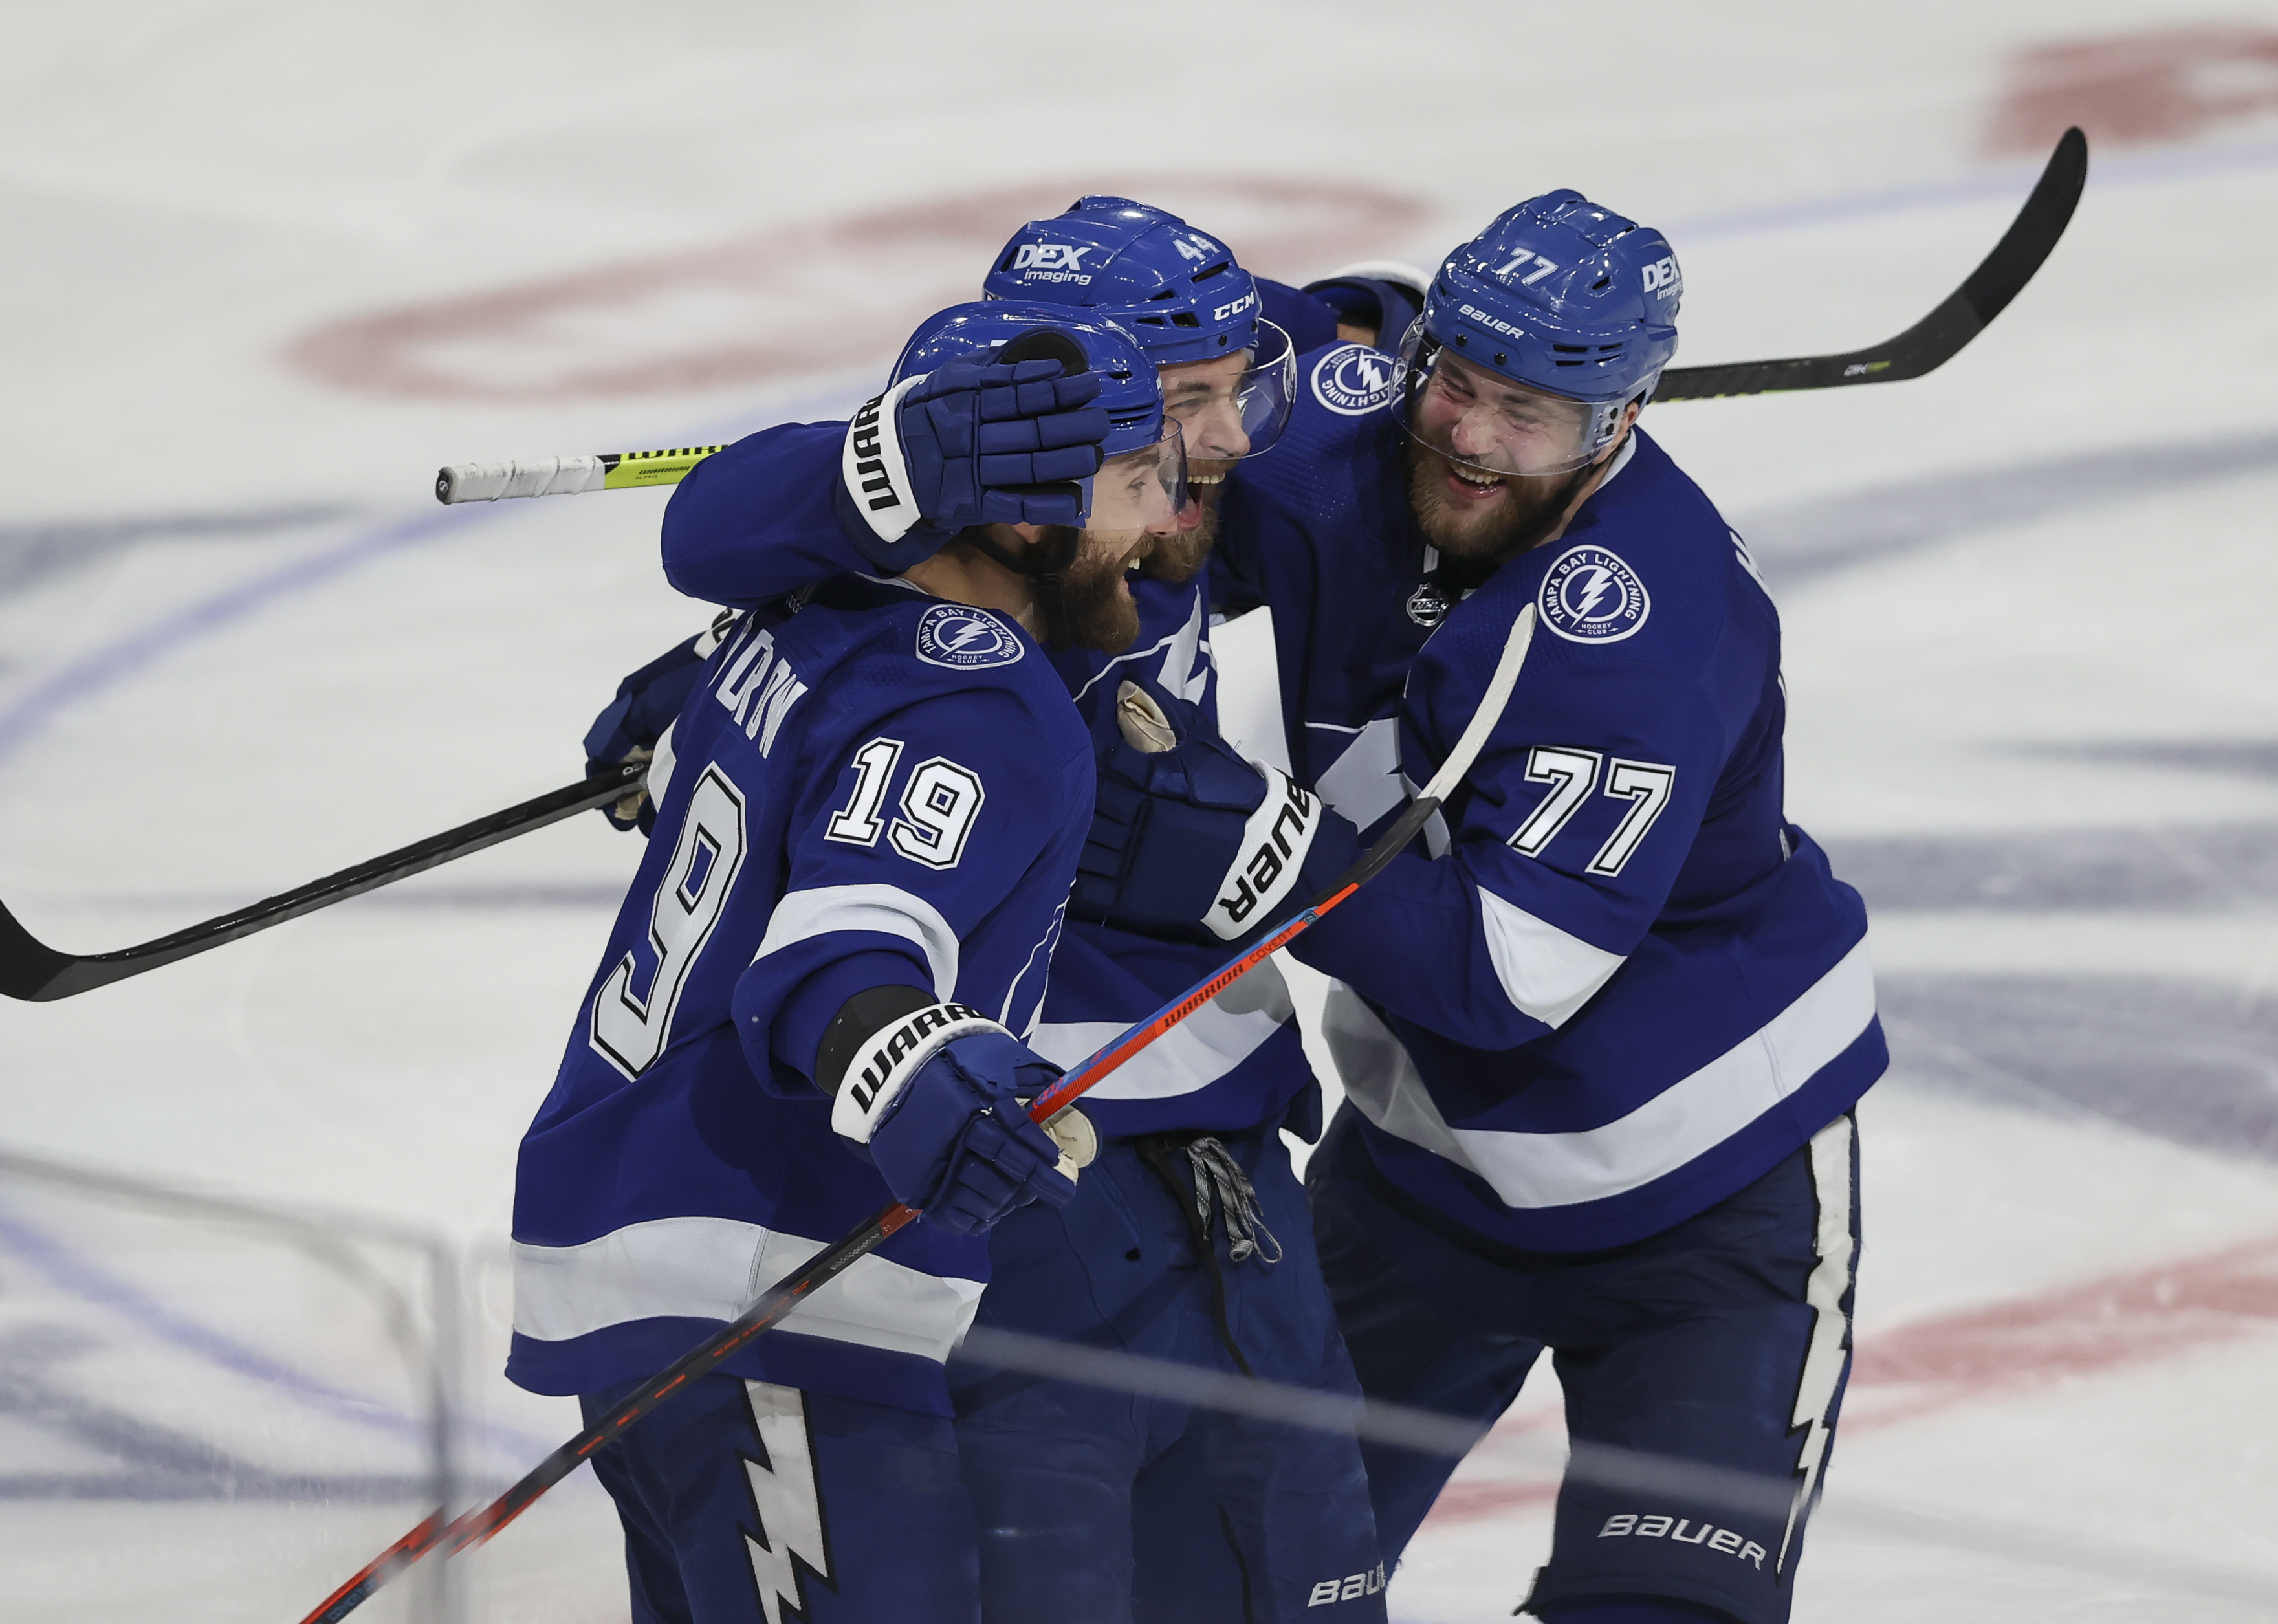 Tampa Bay Lightning defenseman Jan Rutta (44) celebrates with Tampa Bay Lightning right wing Barclay Goodrow (19) and Tampa Bay Lightning defenseman Victor Hedman (77) after scoring a goal in the third period of Game 2 of the Stanley Cup Playoffs Semifinals between the New York Islanders and Tampa Bay Lightning on June 15, 2021 at Amalie Arena in Tampa, FL.